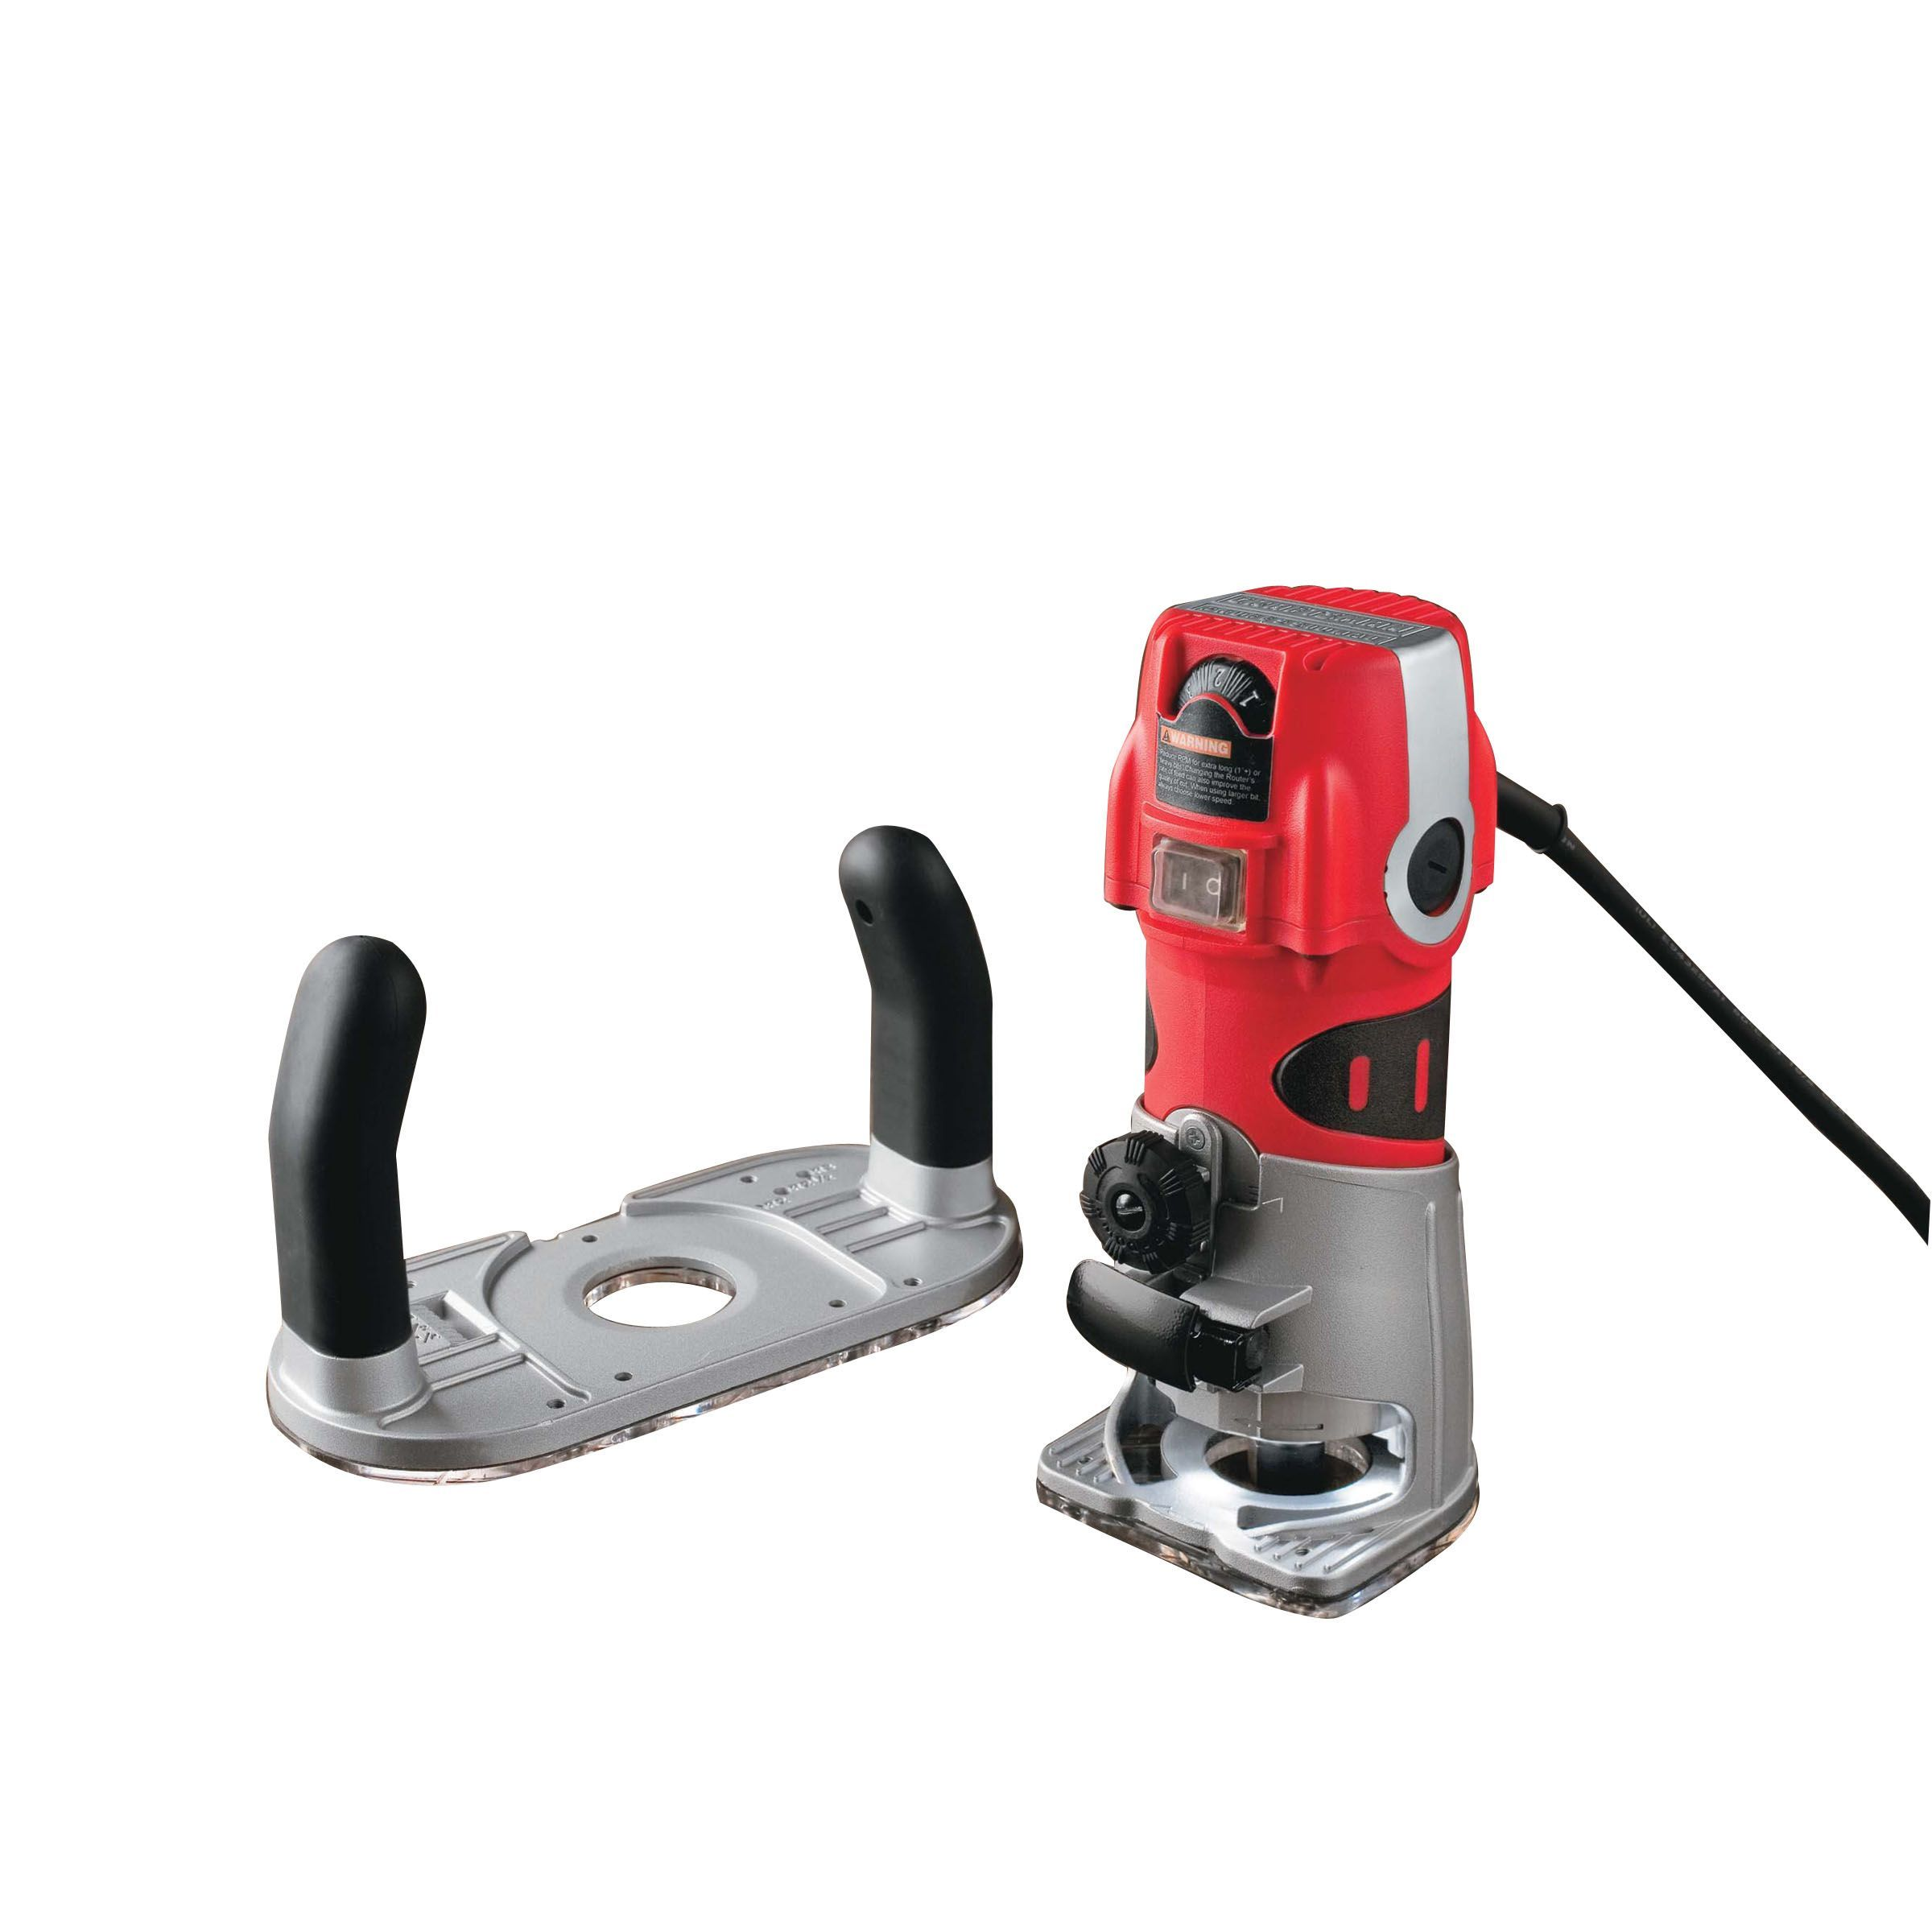 Craftsman Professional 28212 6 5 Amp Corded Fixed Base Palm Router Tools Corded Handheld Power Tools All Corde Cordless Power Tools Craftsman Router Tool